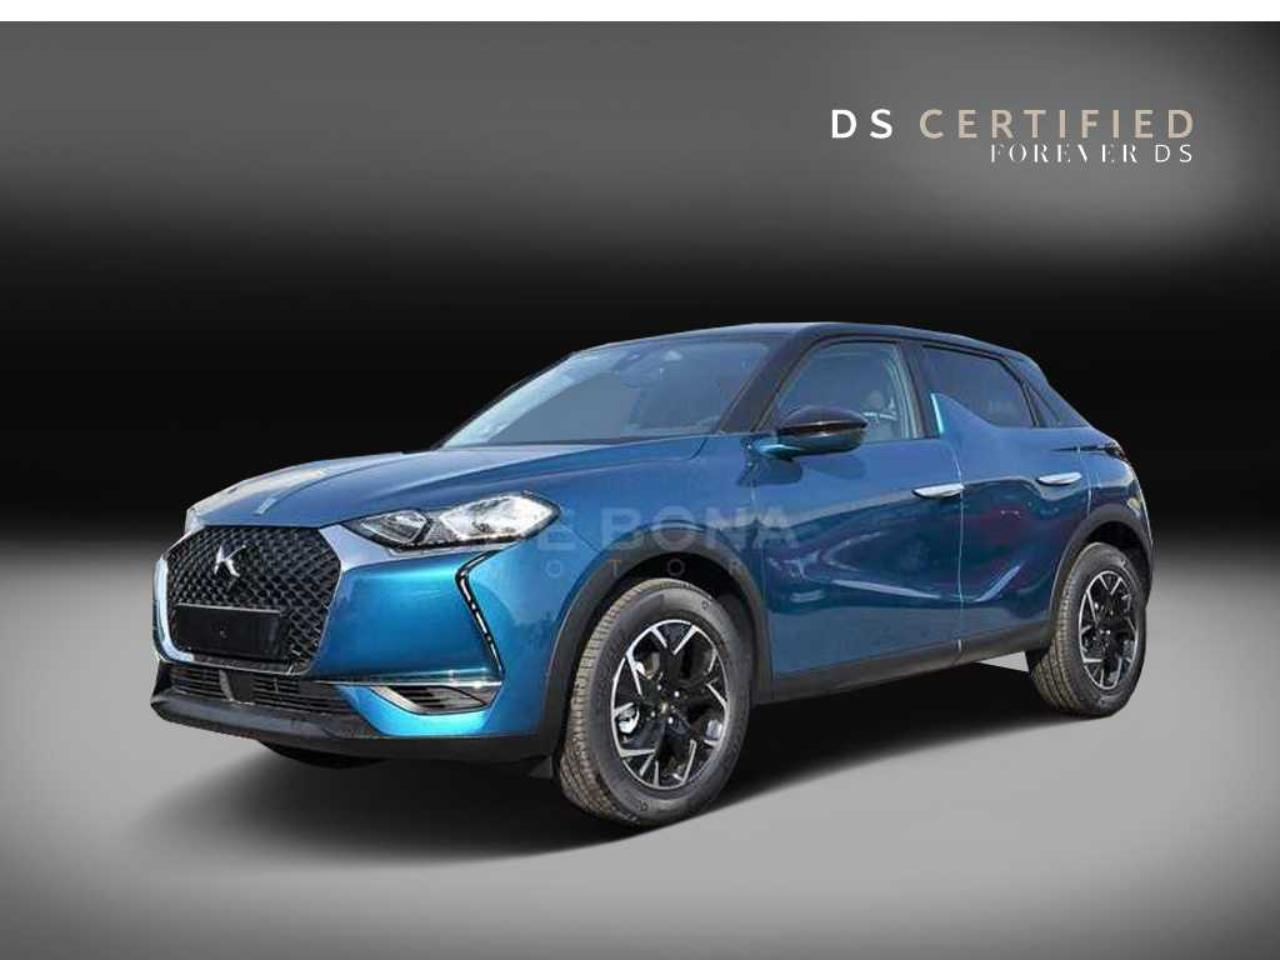 Ds DS 3 Crossback 1.5 bluehdi So Chic 100cv